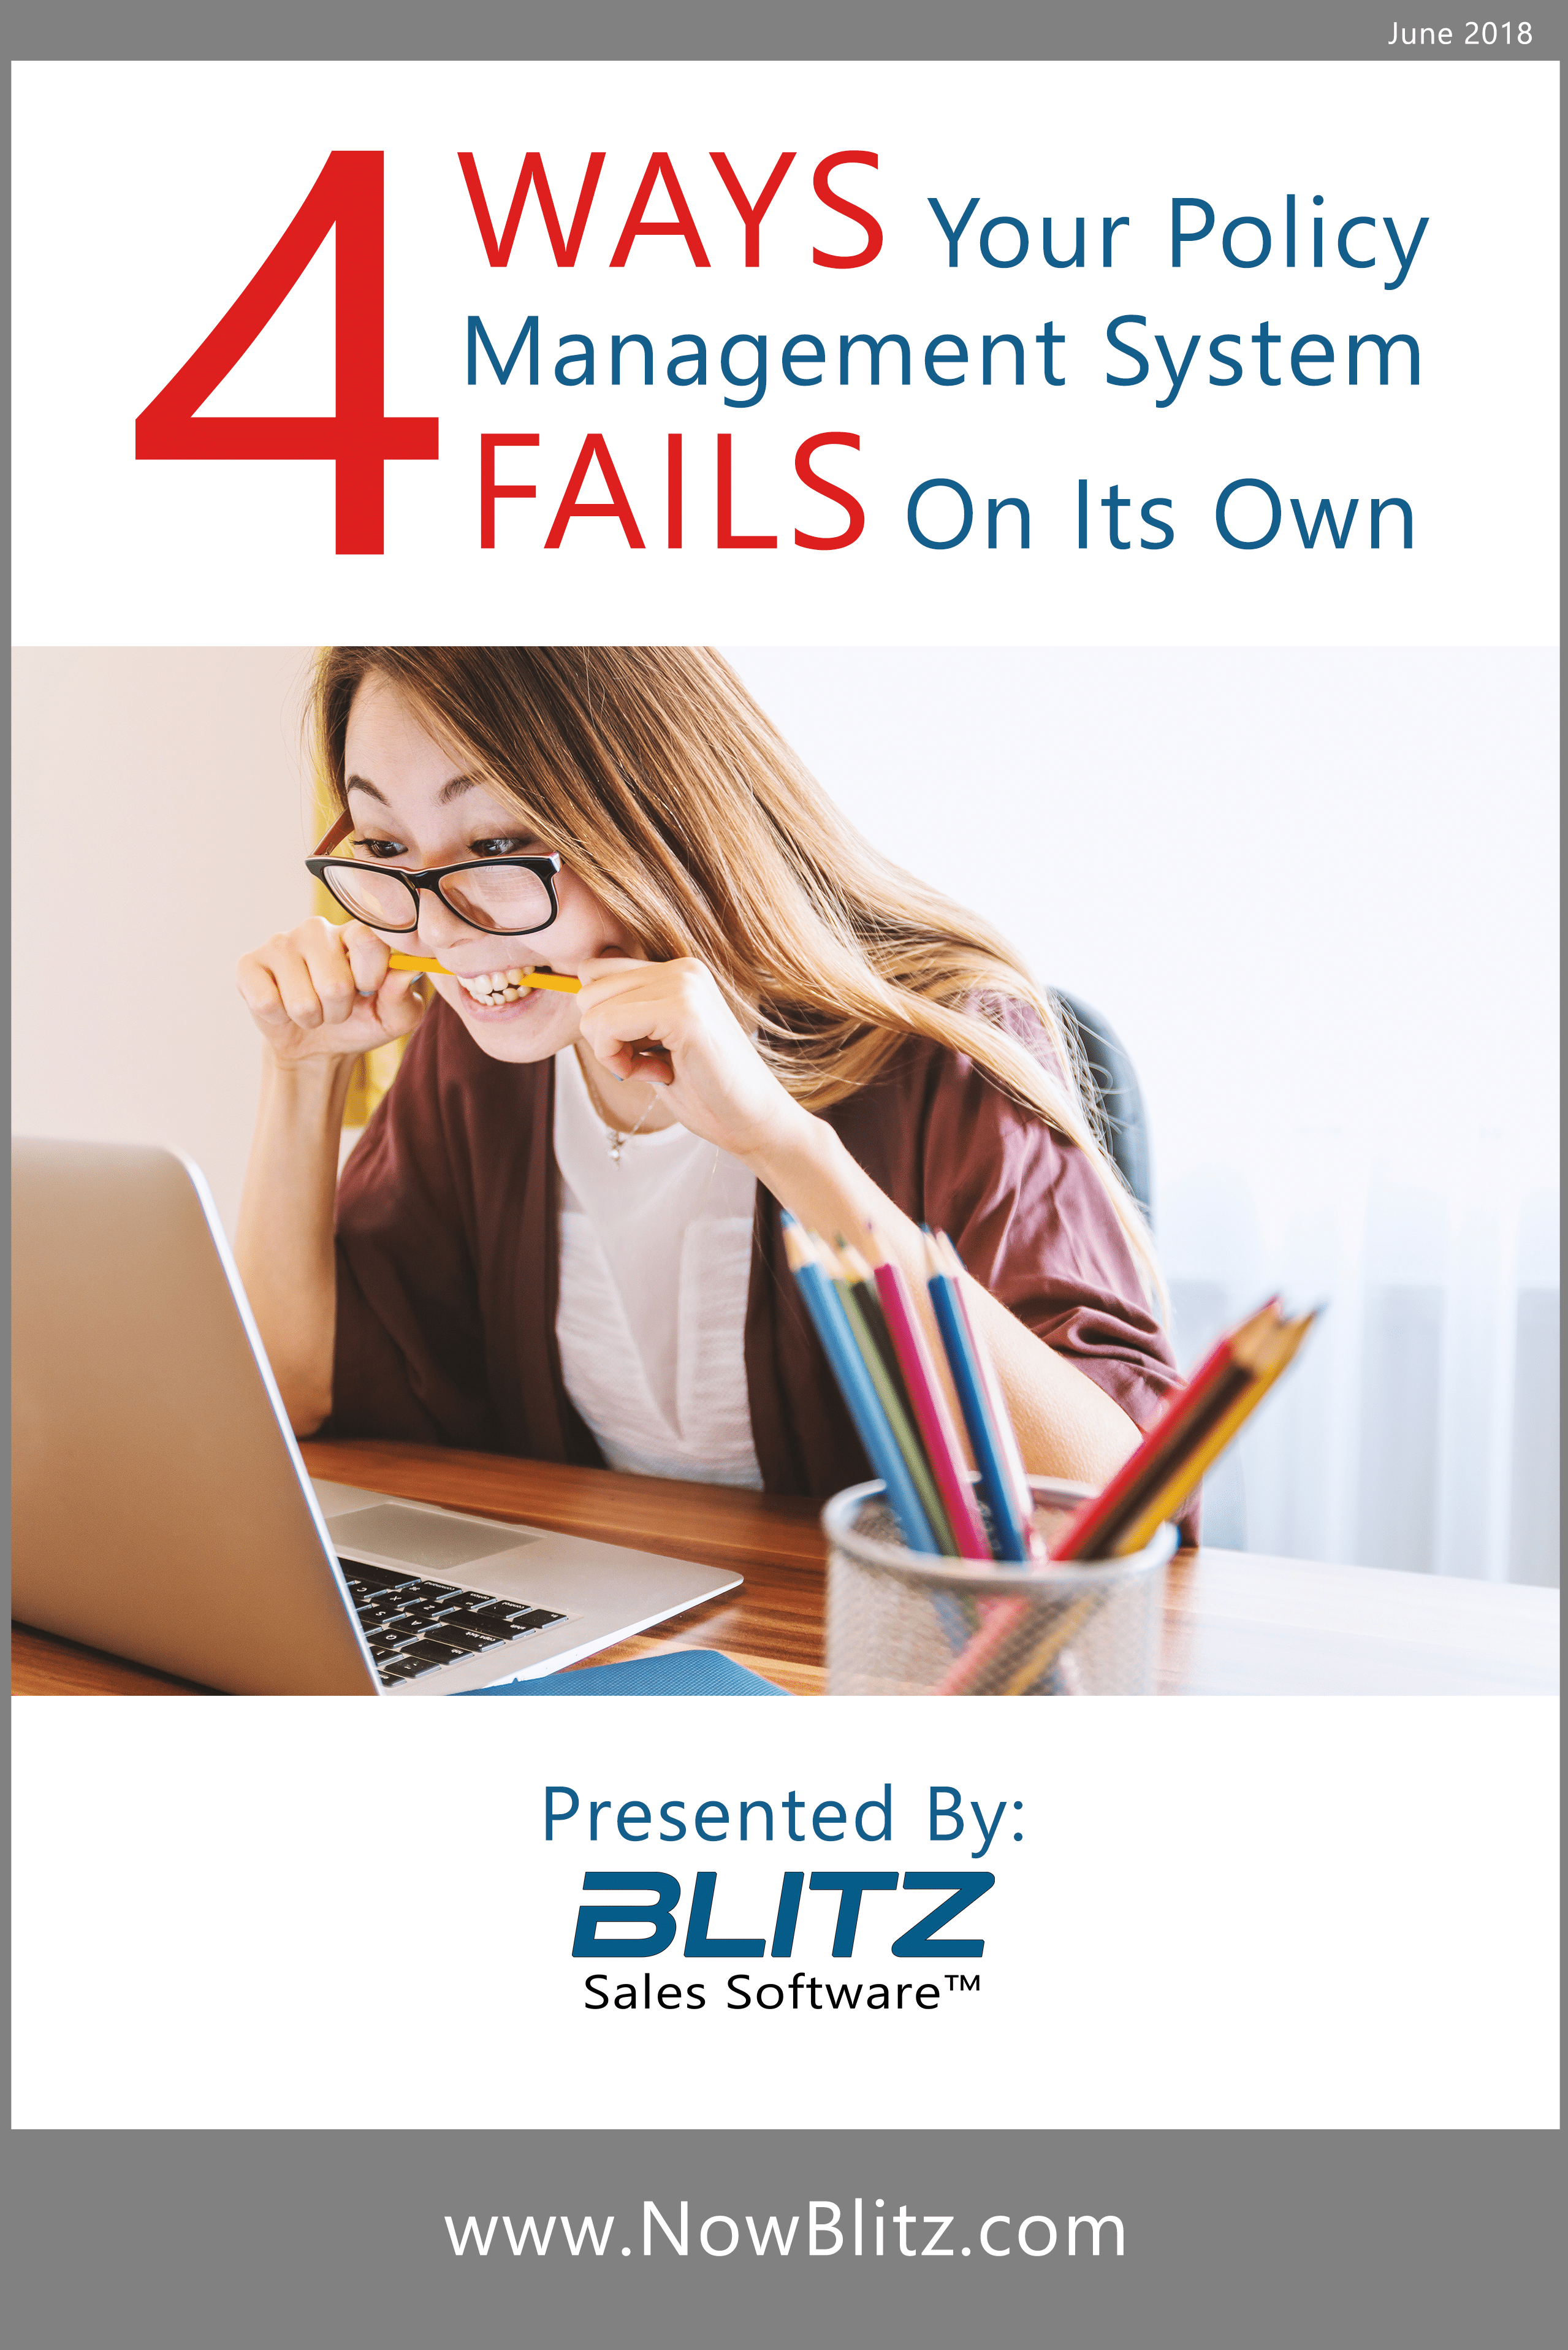 4 Ways Your Policy Management System Fails on Its Own